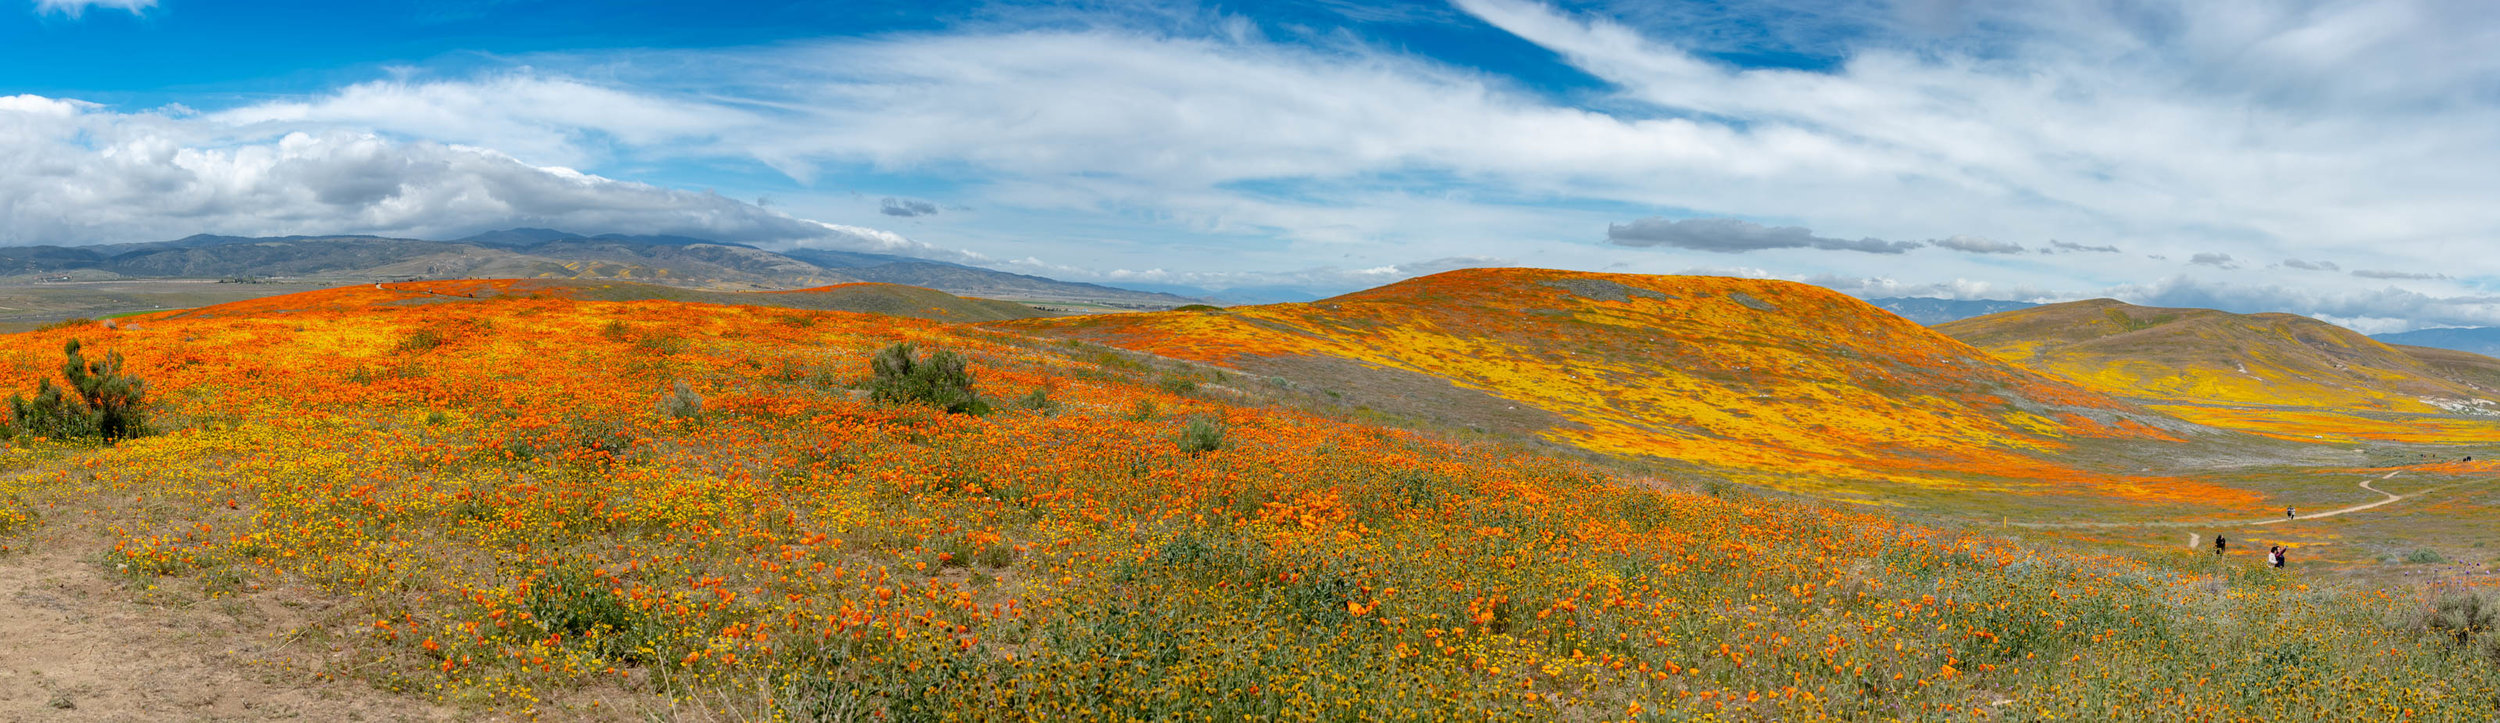 California Poppy Preserve Lancaster, California